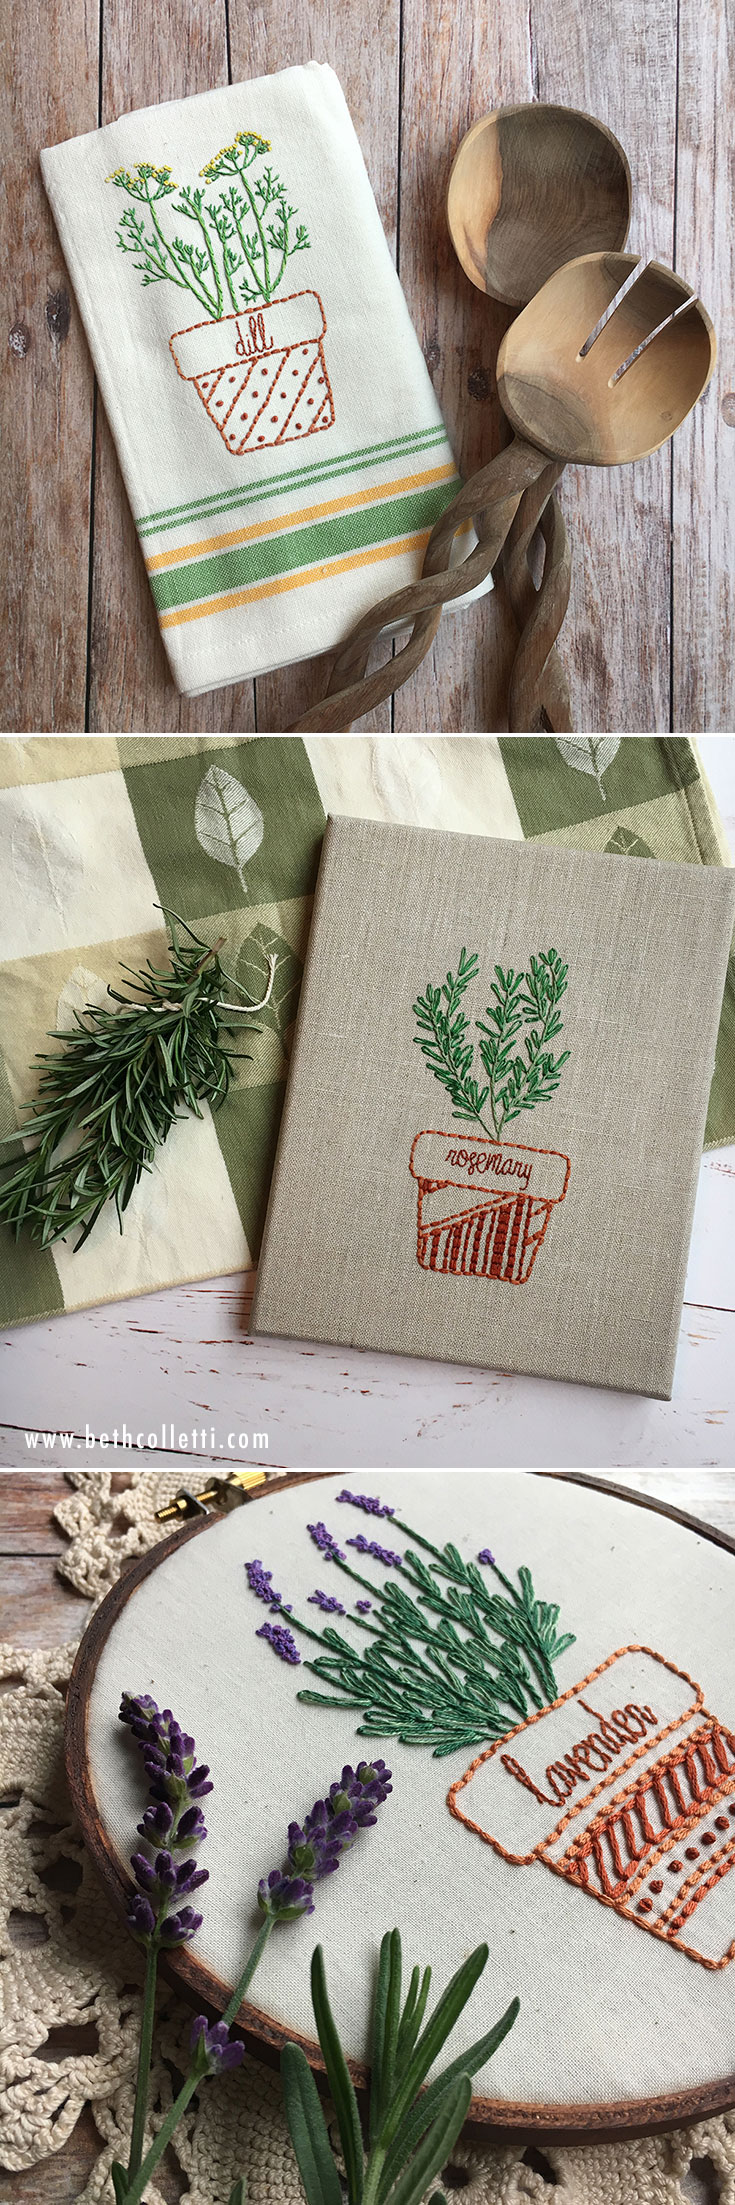 Beth_Colletti_Herb_Patterns_Lavender_Dill_Rosemary.jpg